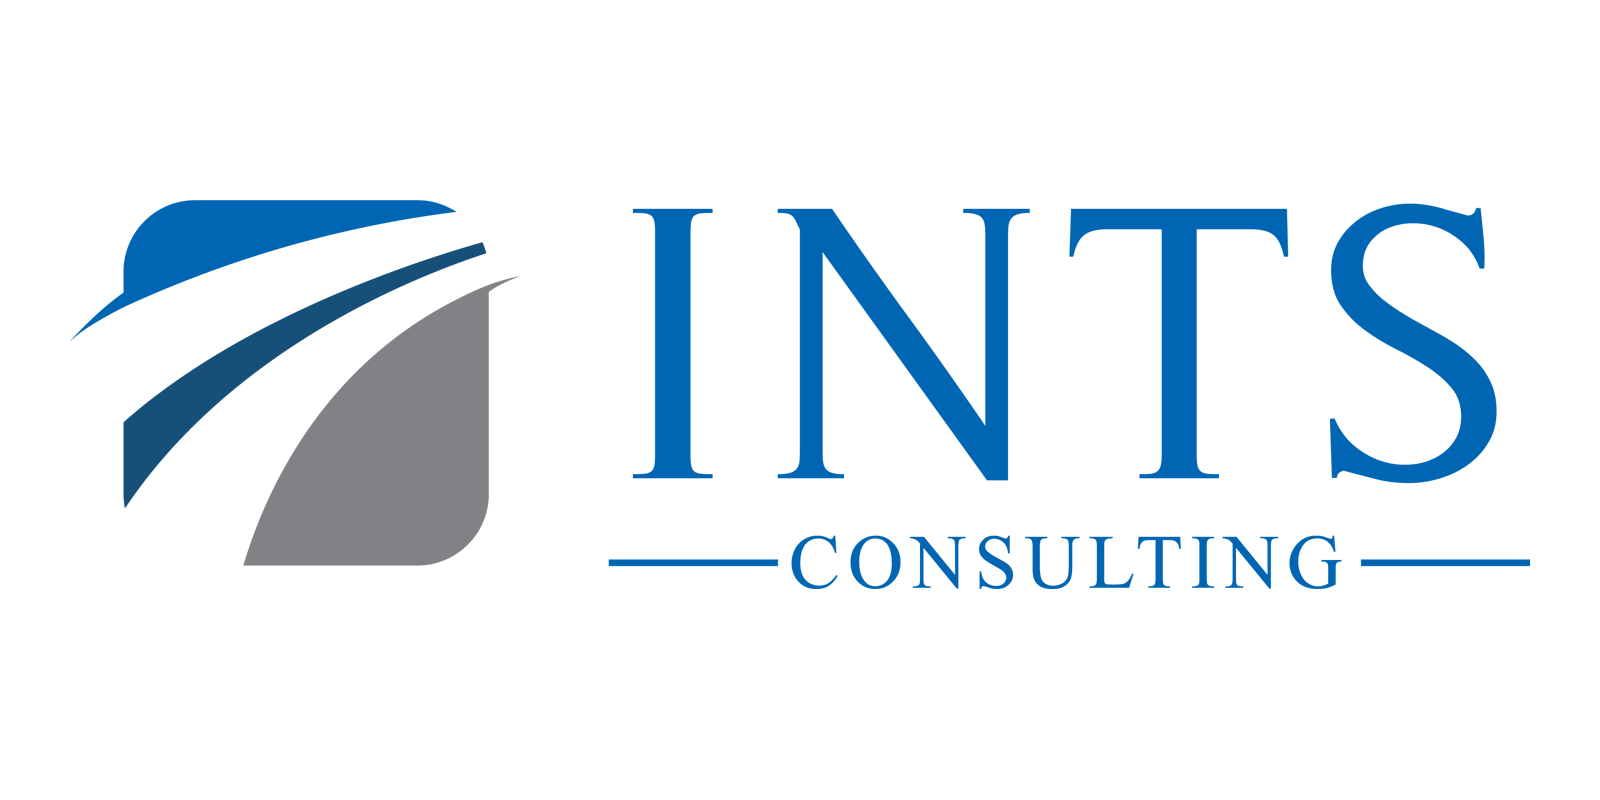 INTS Consulting